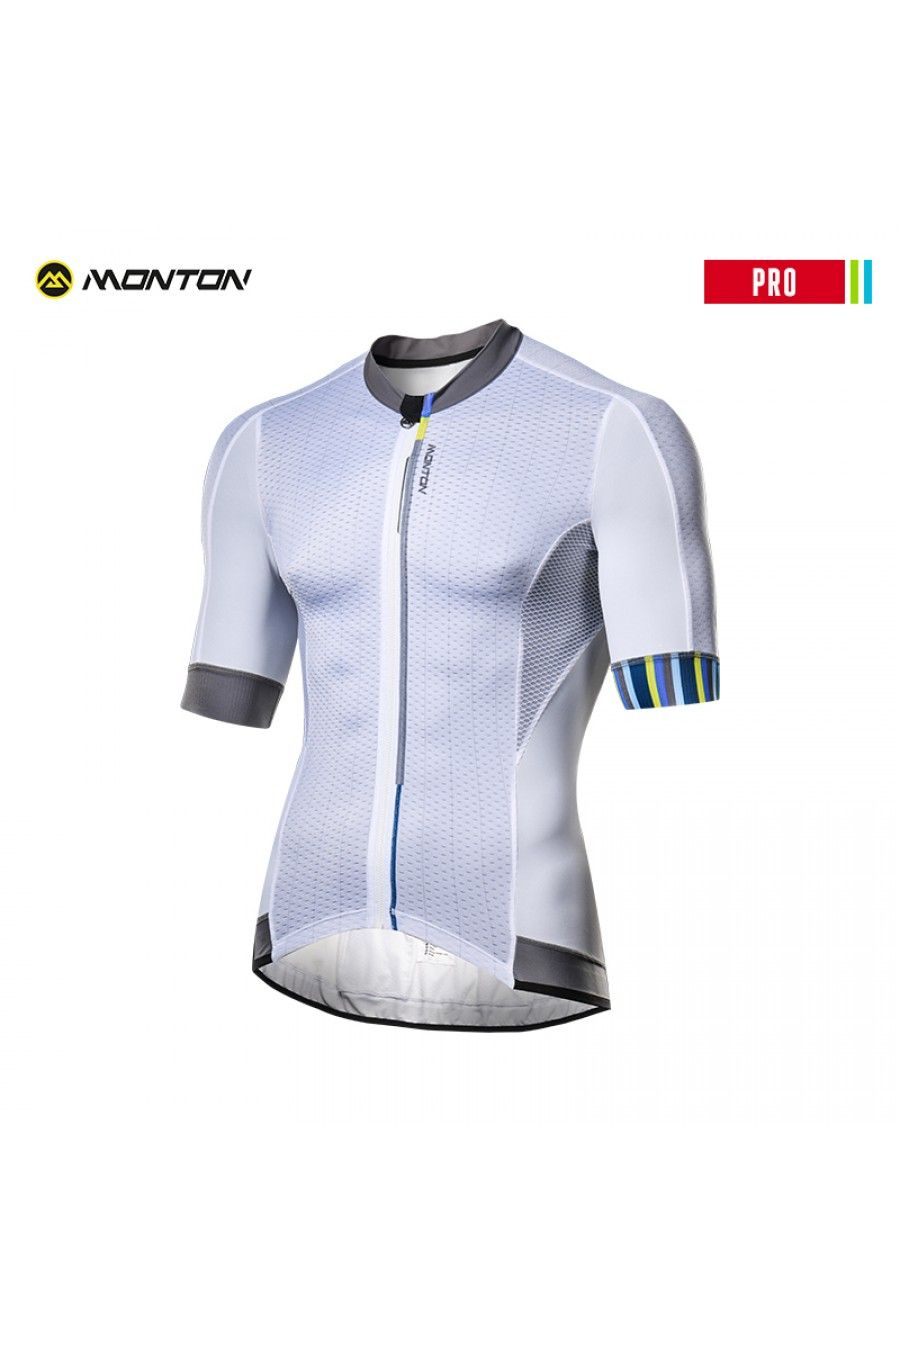 0e41a24f0 Plain white cycling jersey